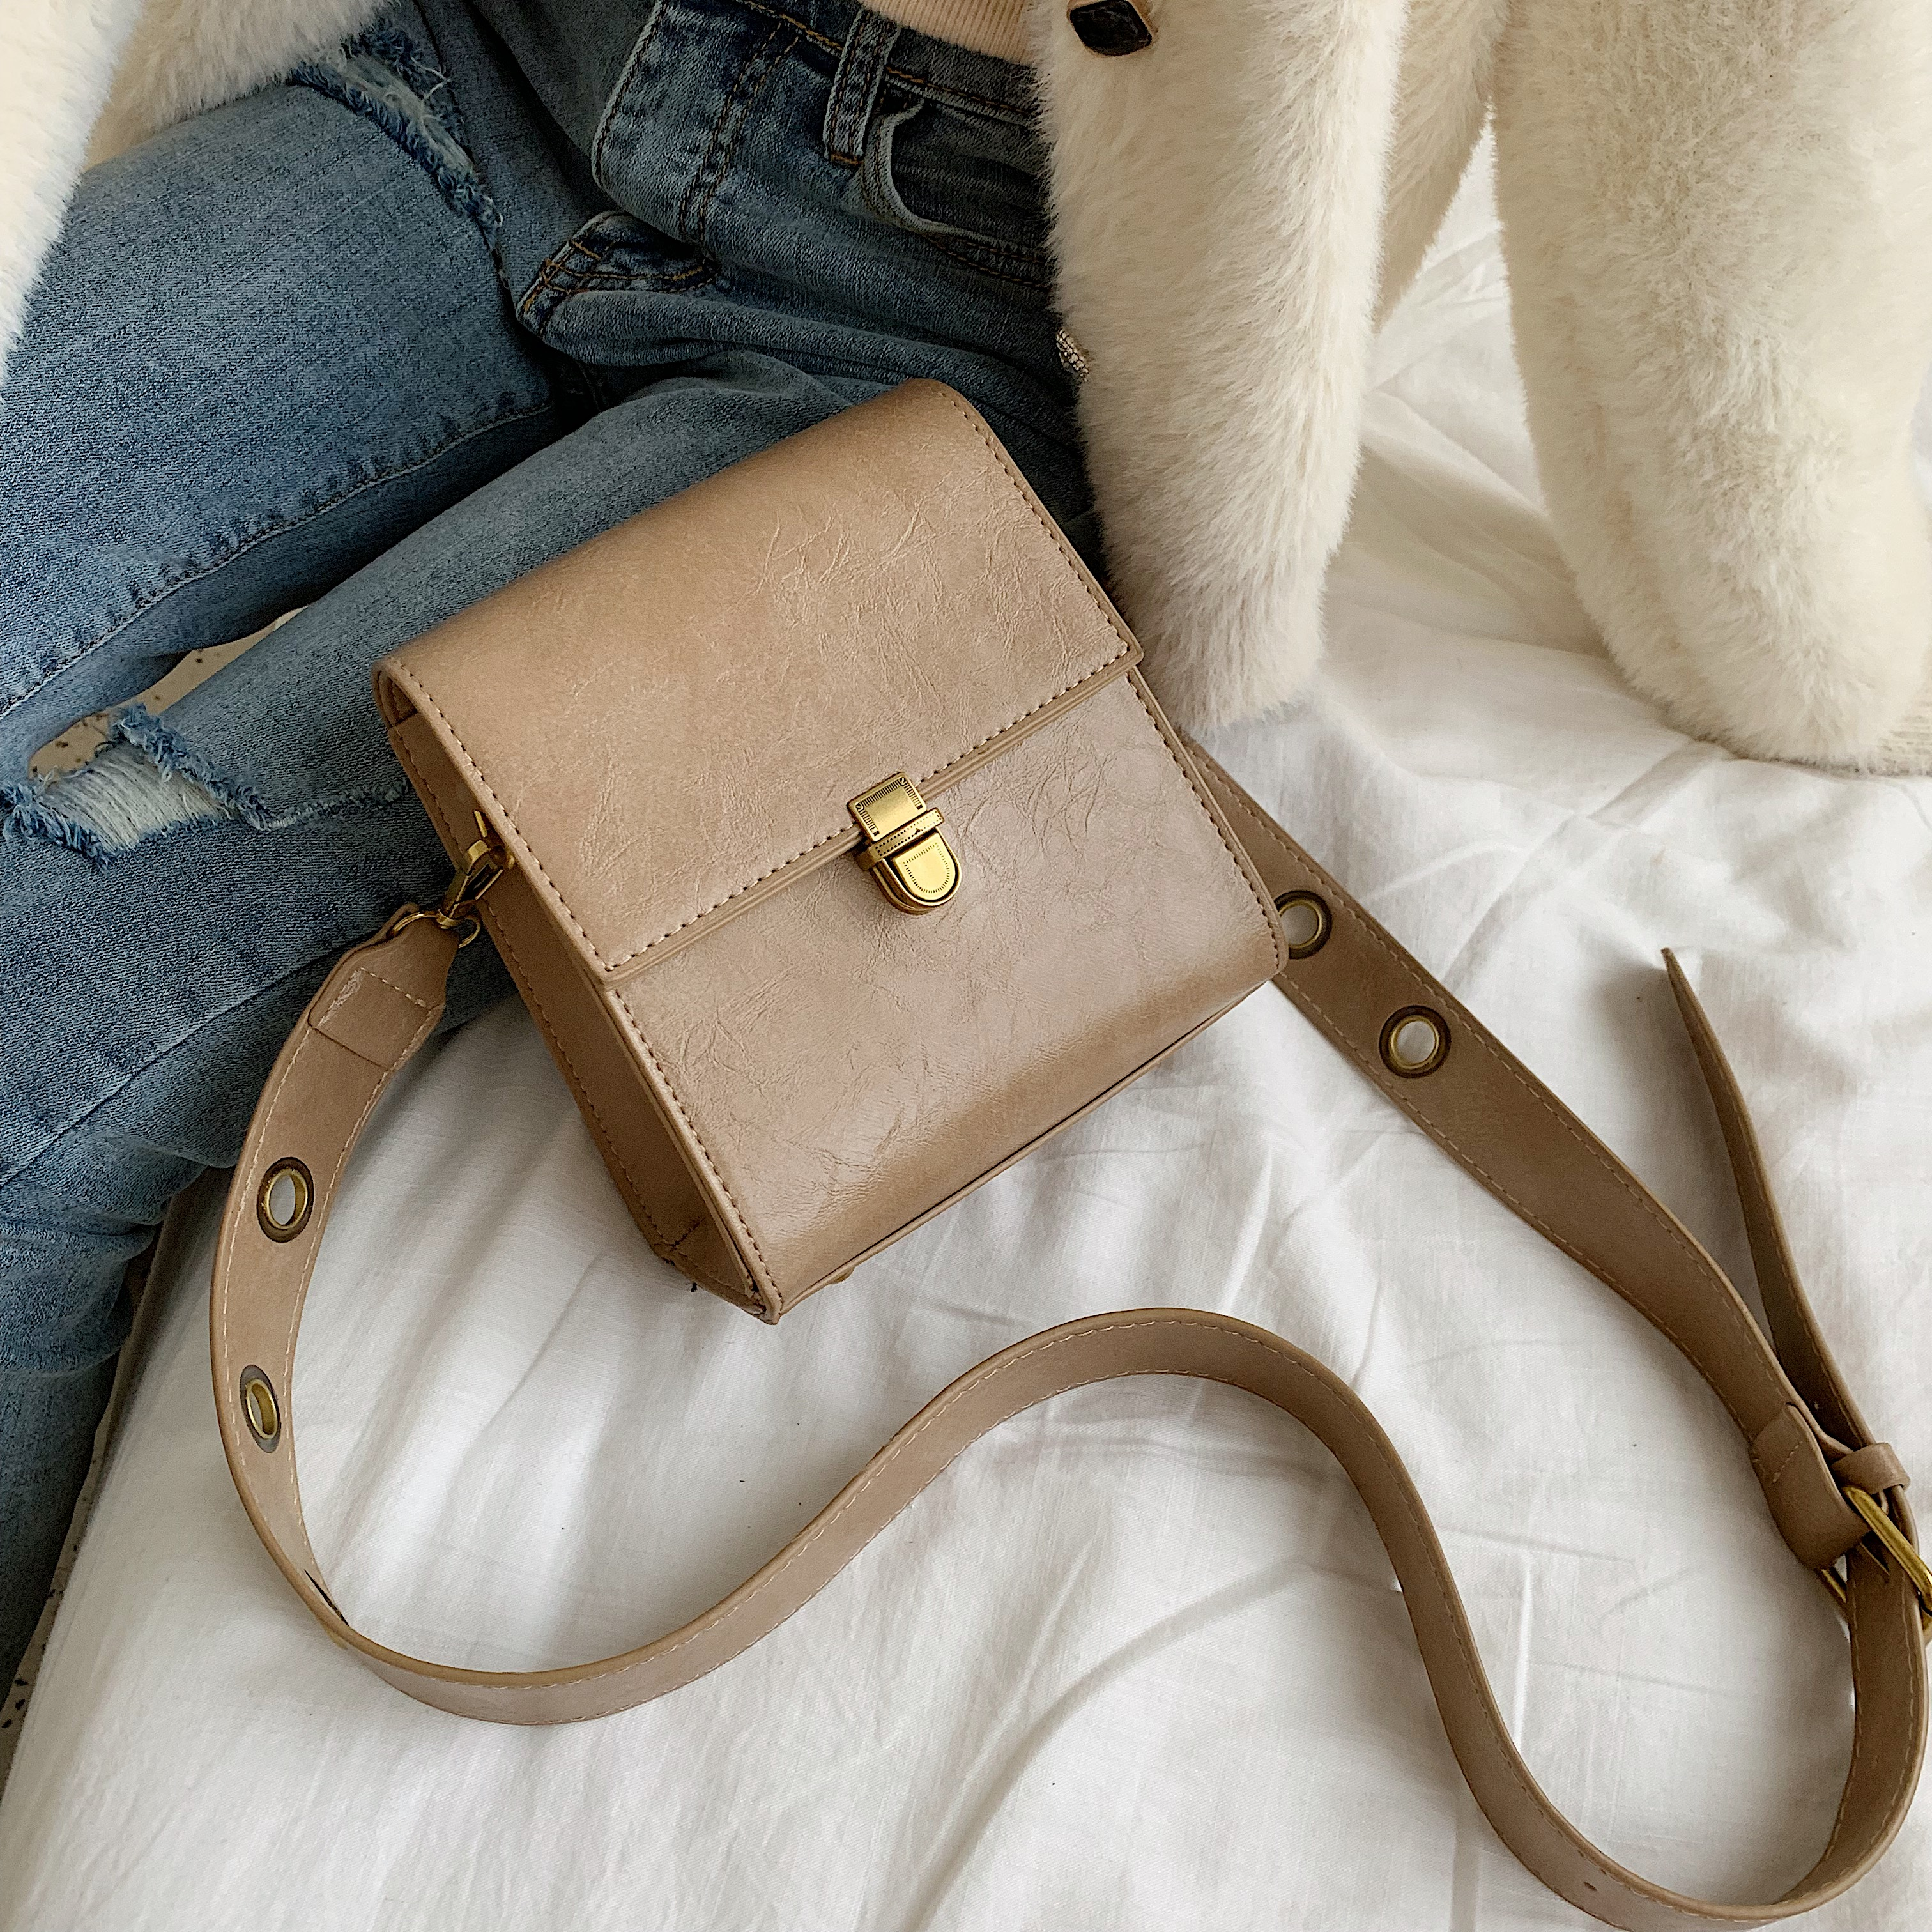 Solid Color Vintage Leather Crossbody Bags For Women 2020 Small Lock Shoulder Messenger Bag Female Travel Handbags And Purses